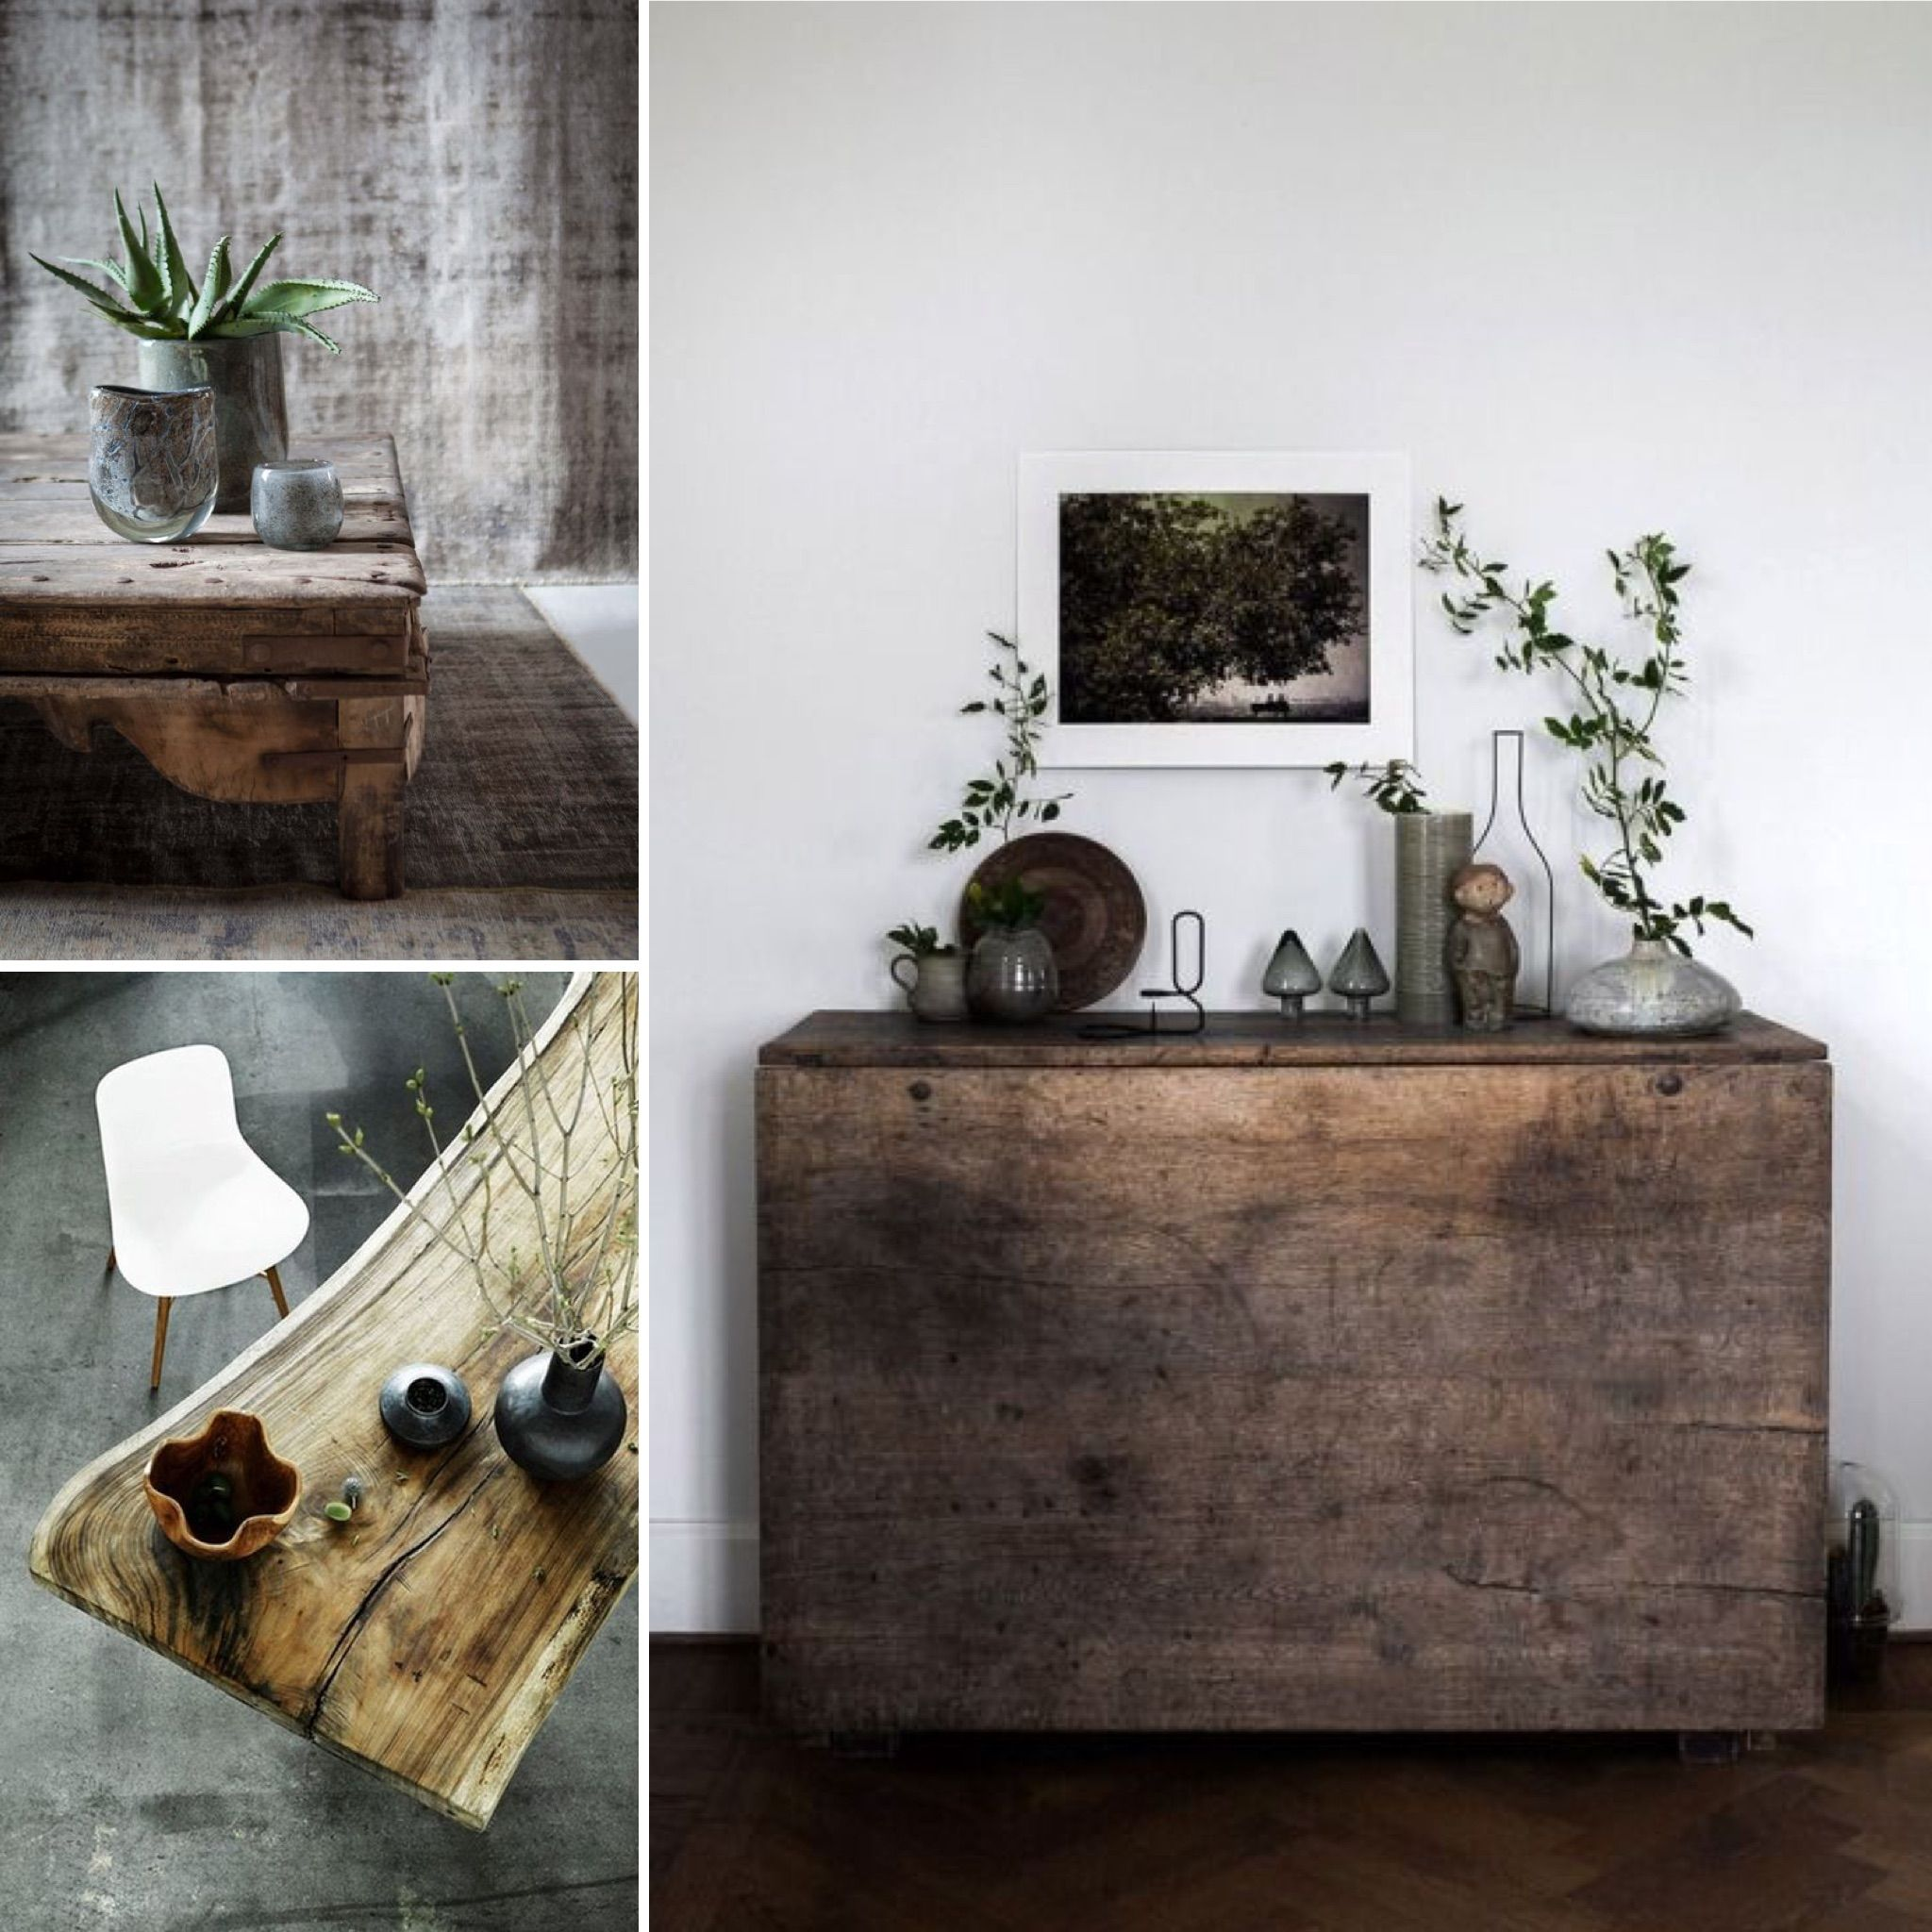 le wabi sabi en d co elephant in the room epur pinterest deco decoration et maison. Black Bedroom Furniture Sets. Home Design Ideas